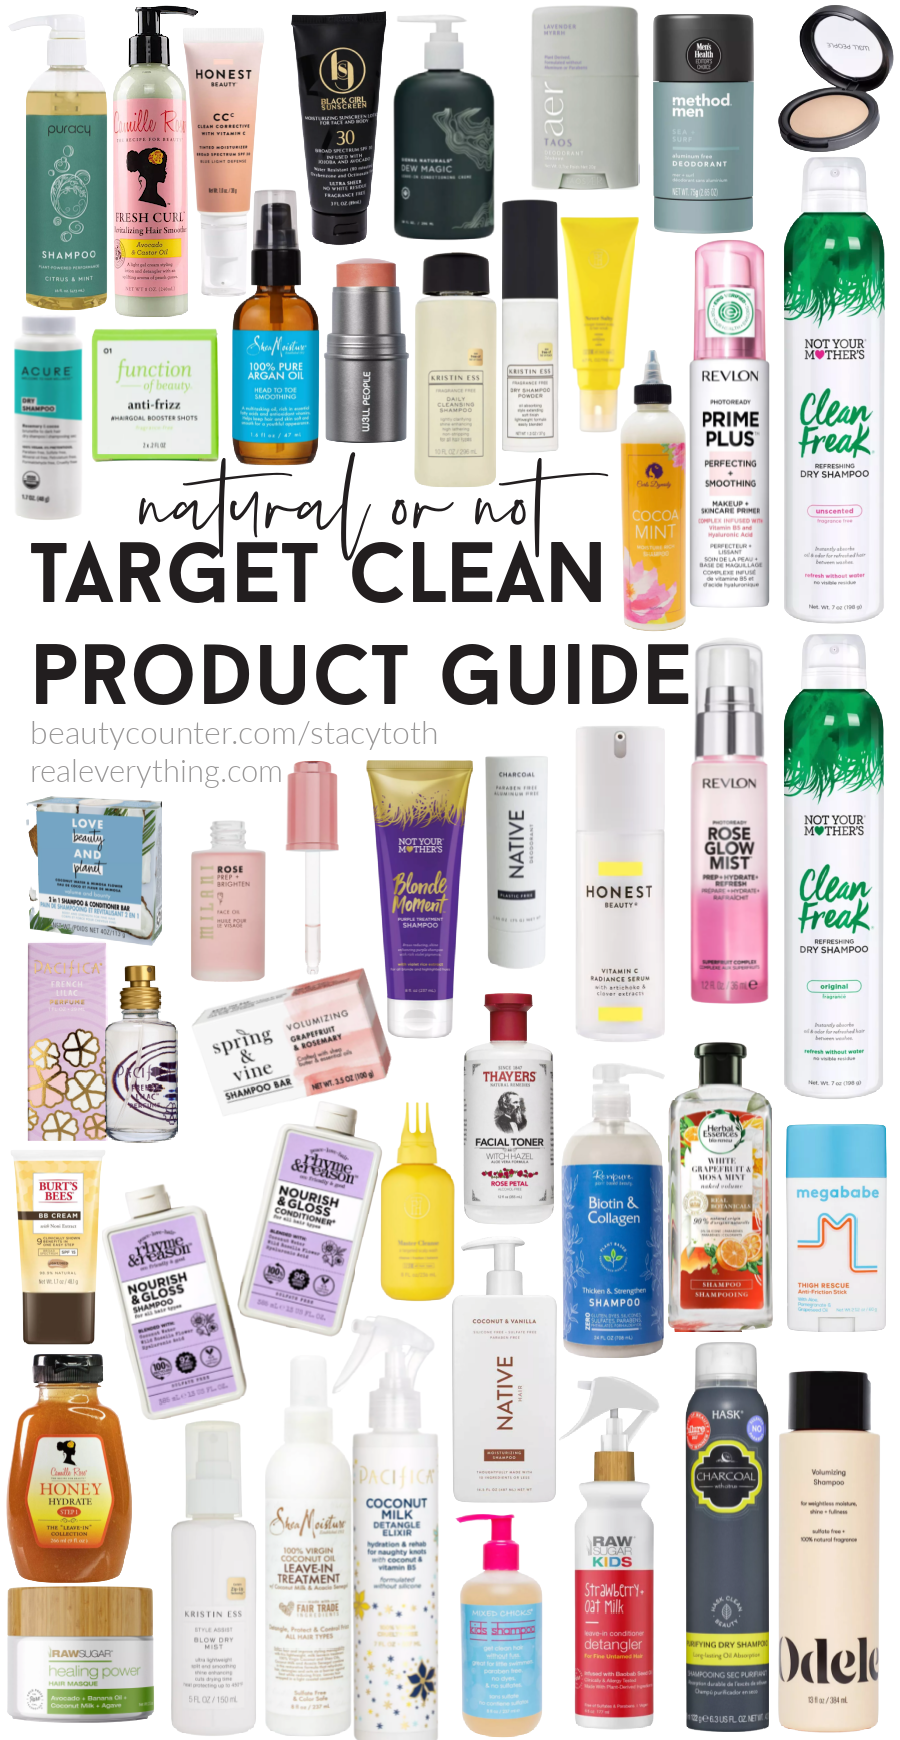 Target Clean Product Guide Overall